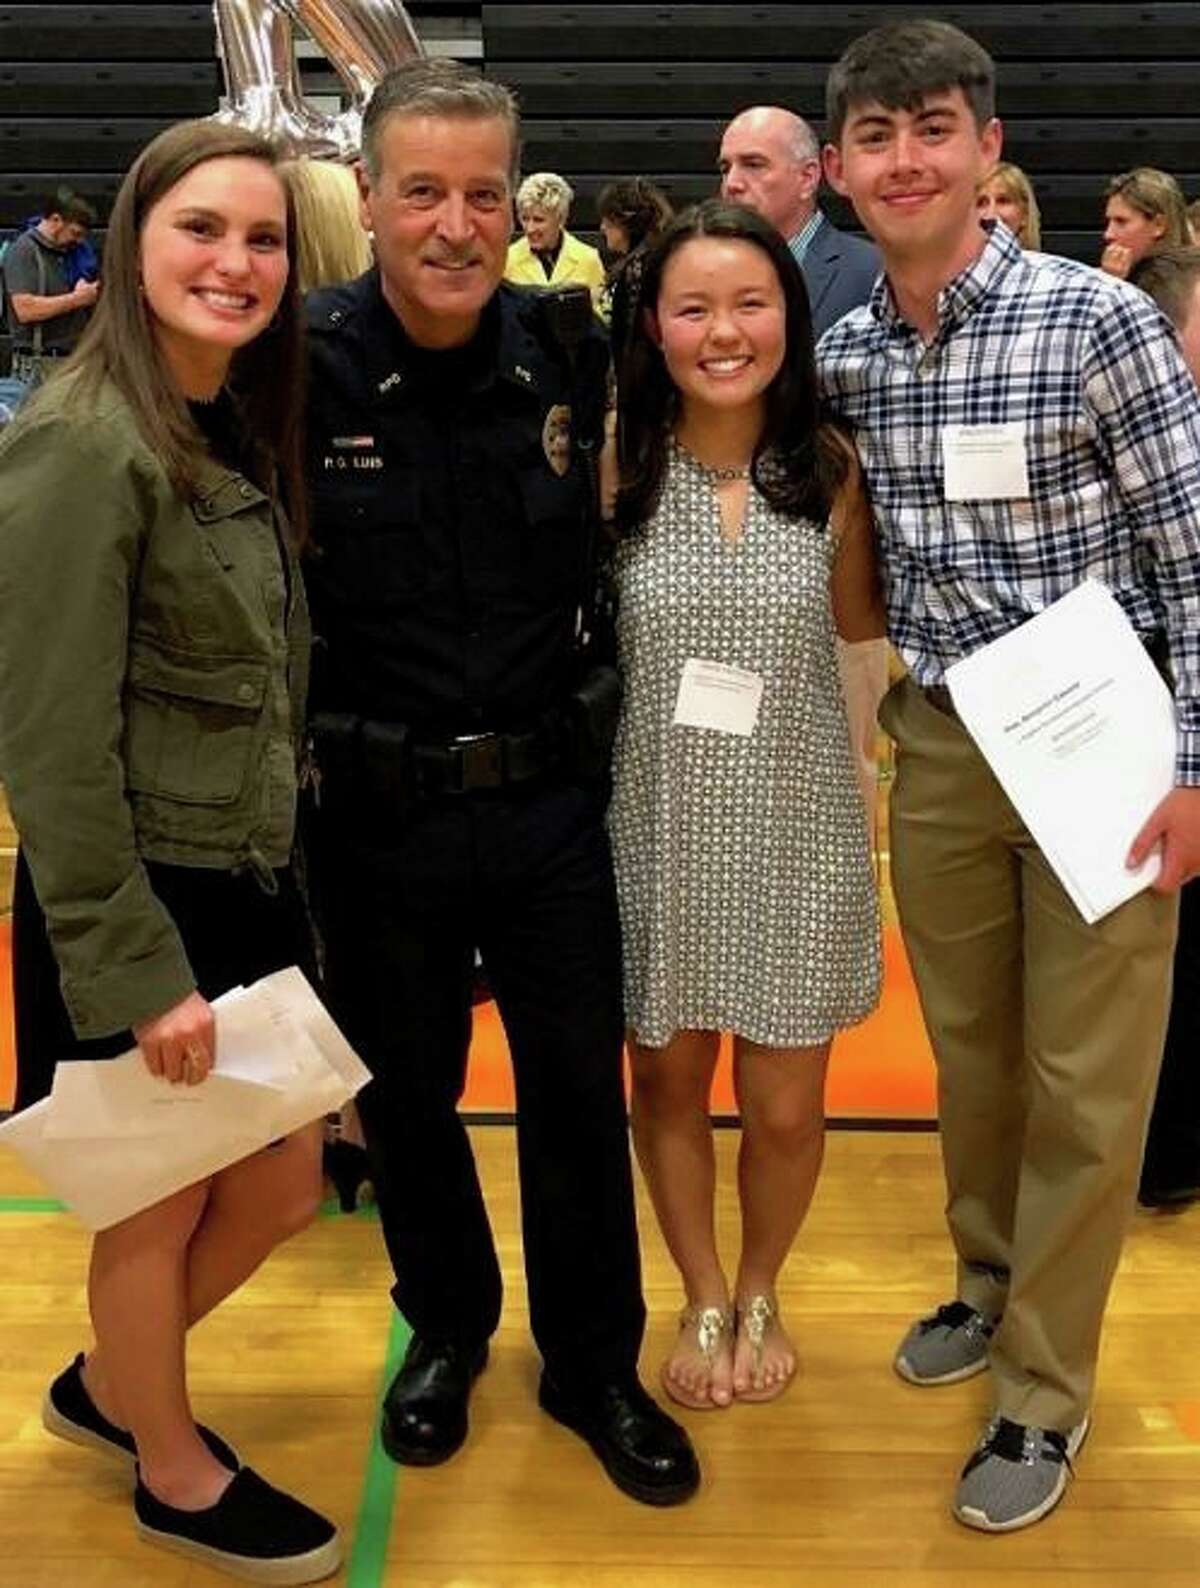 Award winners of this year's Ridgefield Police Benevolent Association Scholarship, from left to right: Emma Brody, Officer Fernando Luis, Grace Preston and Benjamin Riek.